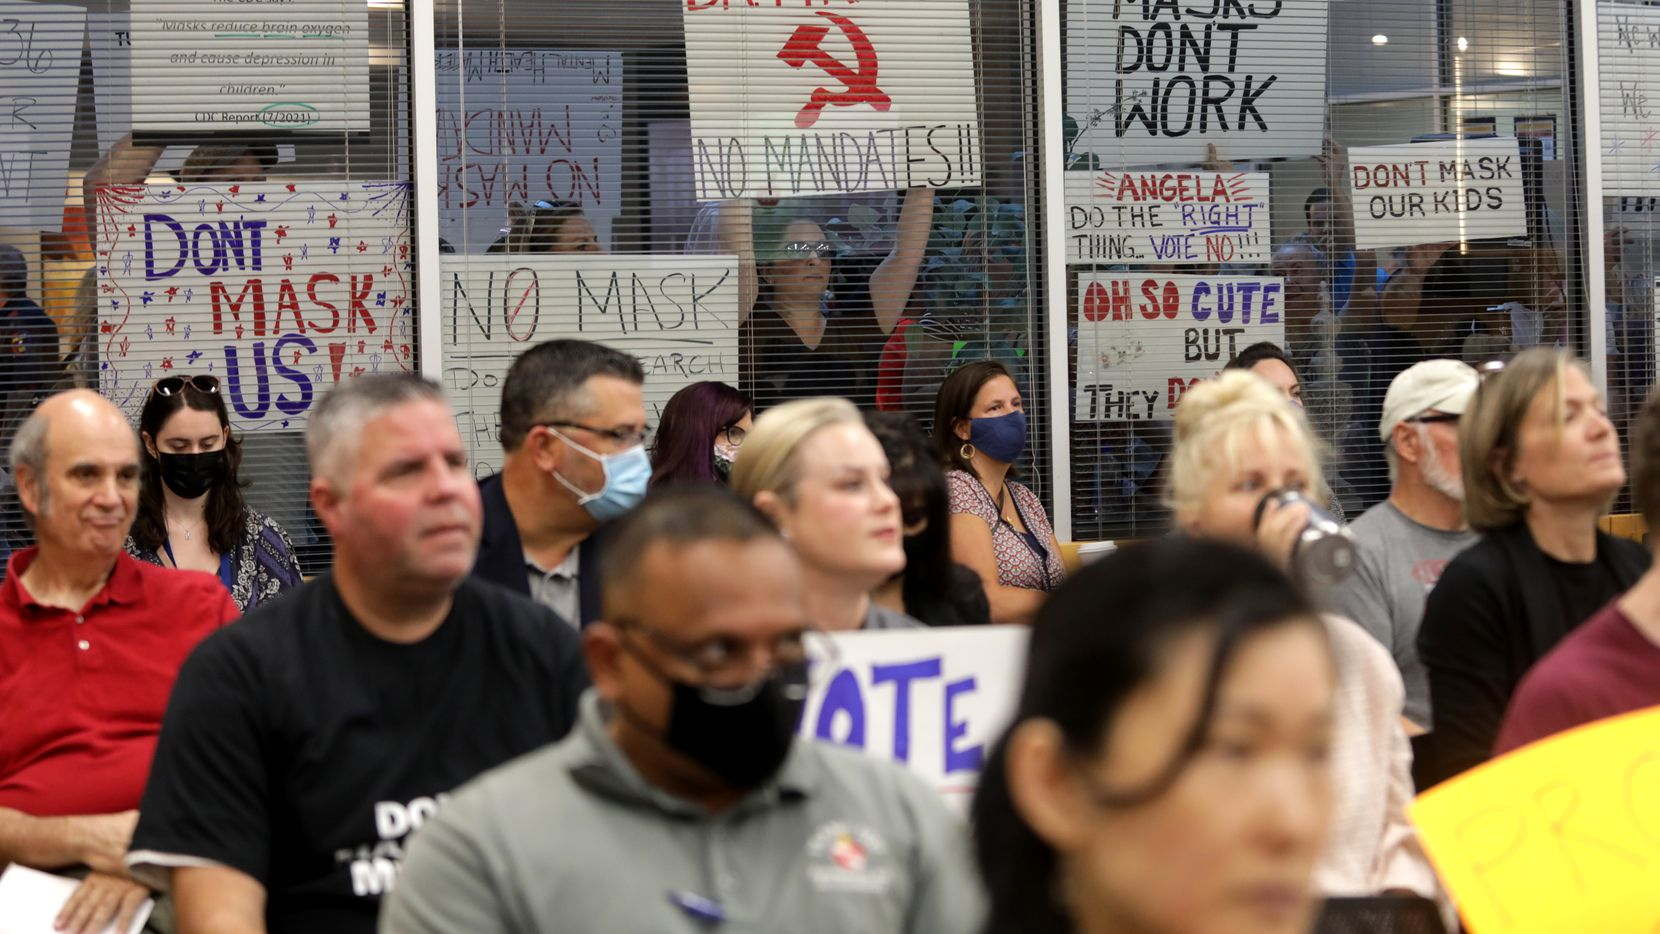 Community members on both sides of the masking debate gather during a Plano ISD emergency meeting regarding mask mandates at the Plano District Administration Building Board Room in Plano, TX, on Aug. 23, 2021.